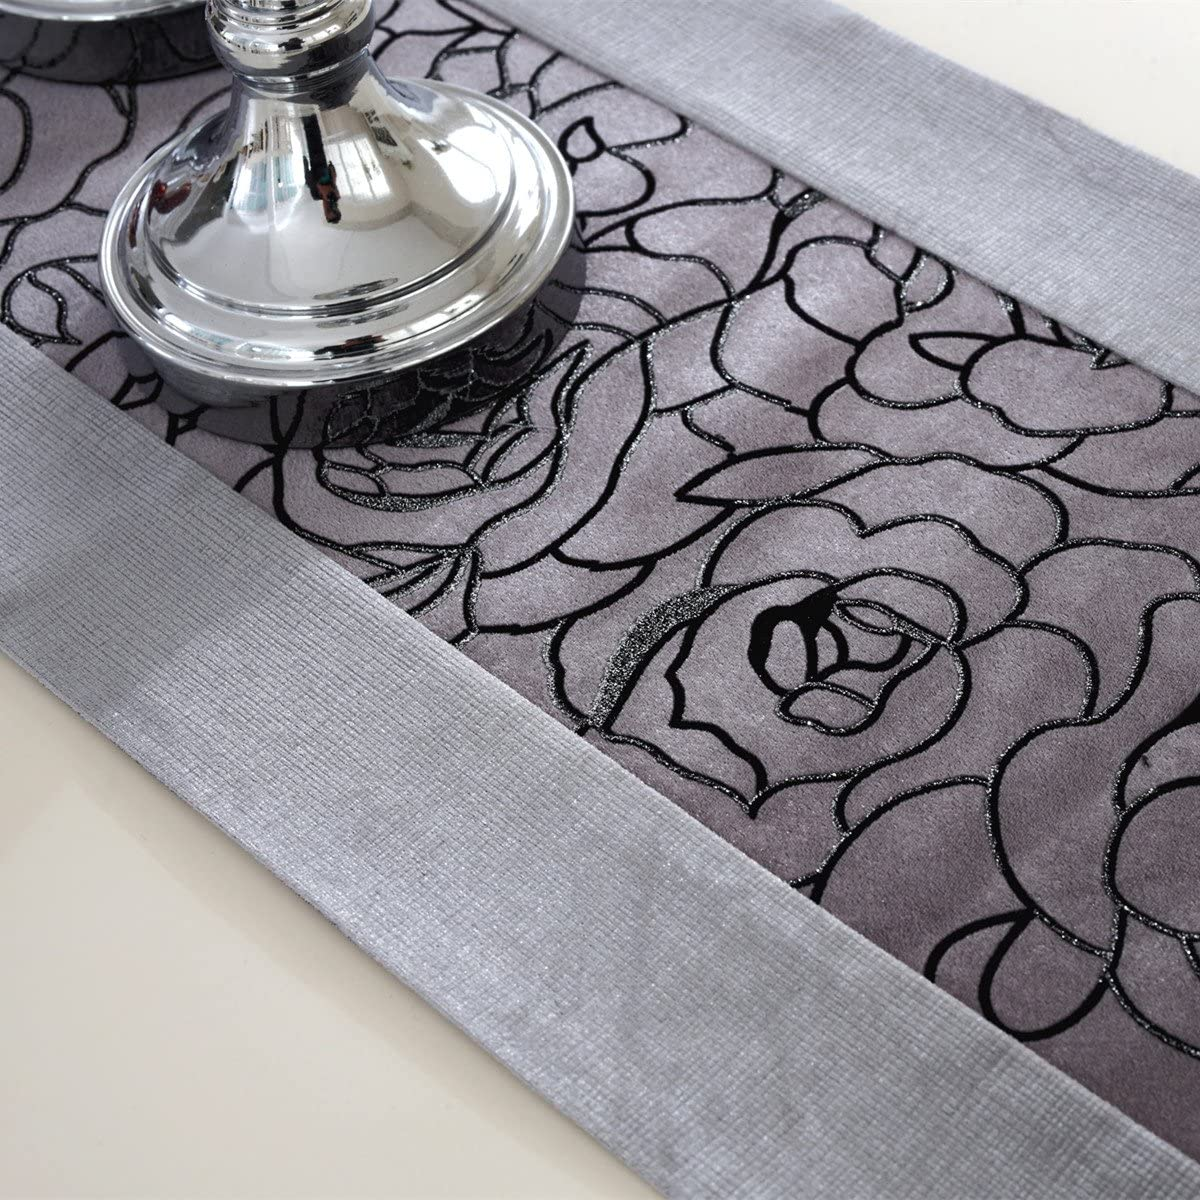 Morden grey flower embroidered blue velvet table runners tapestry 72 inch approx for party and wedding